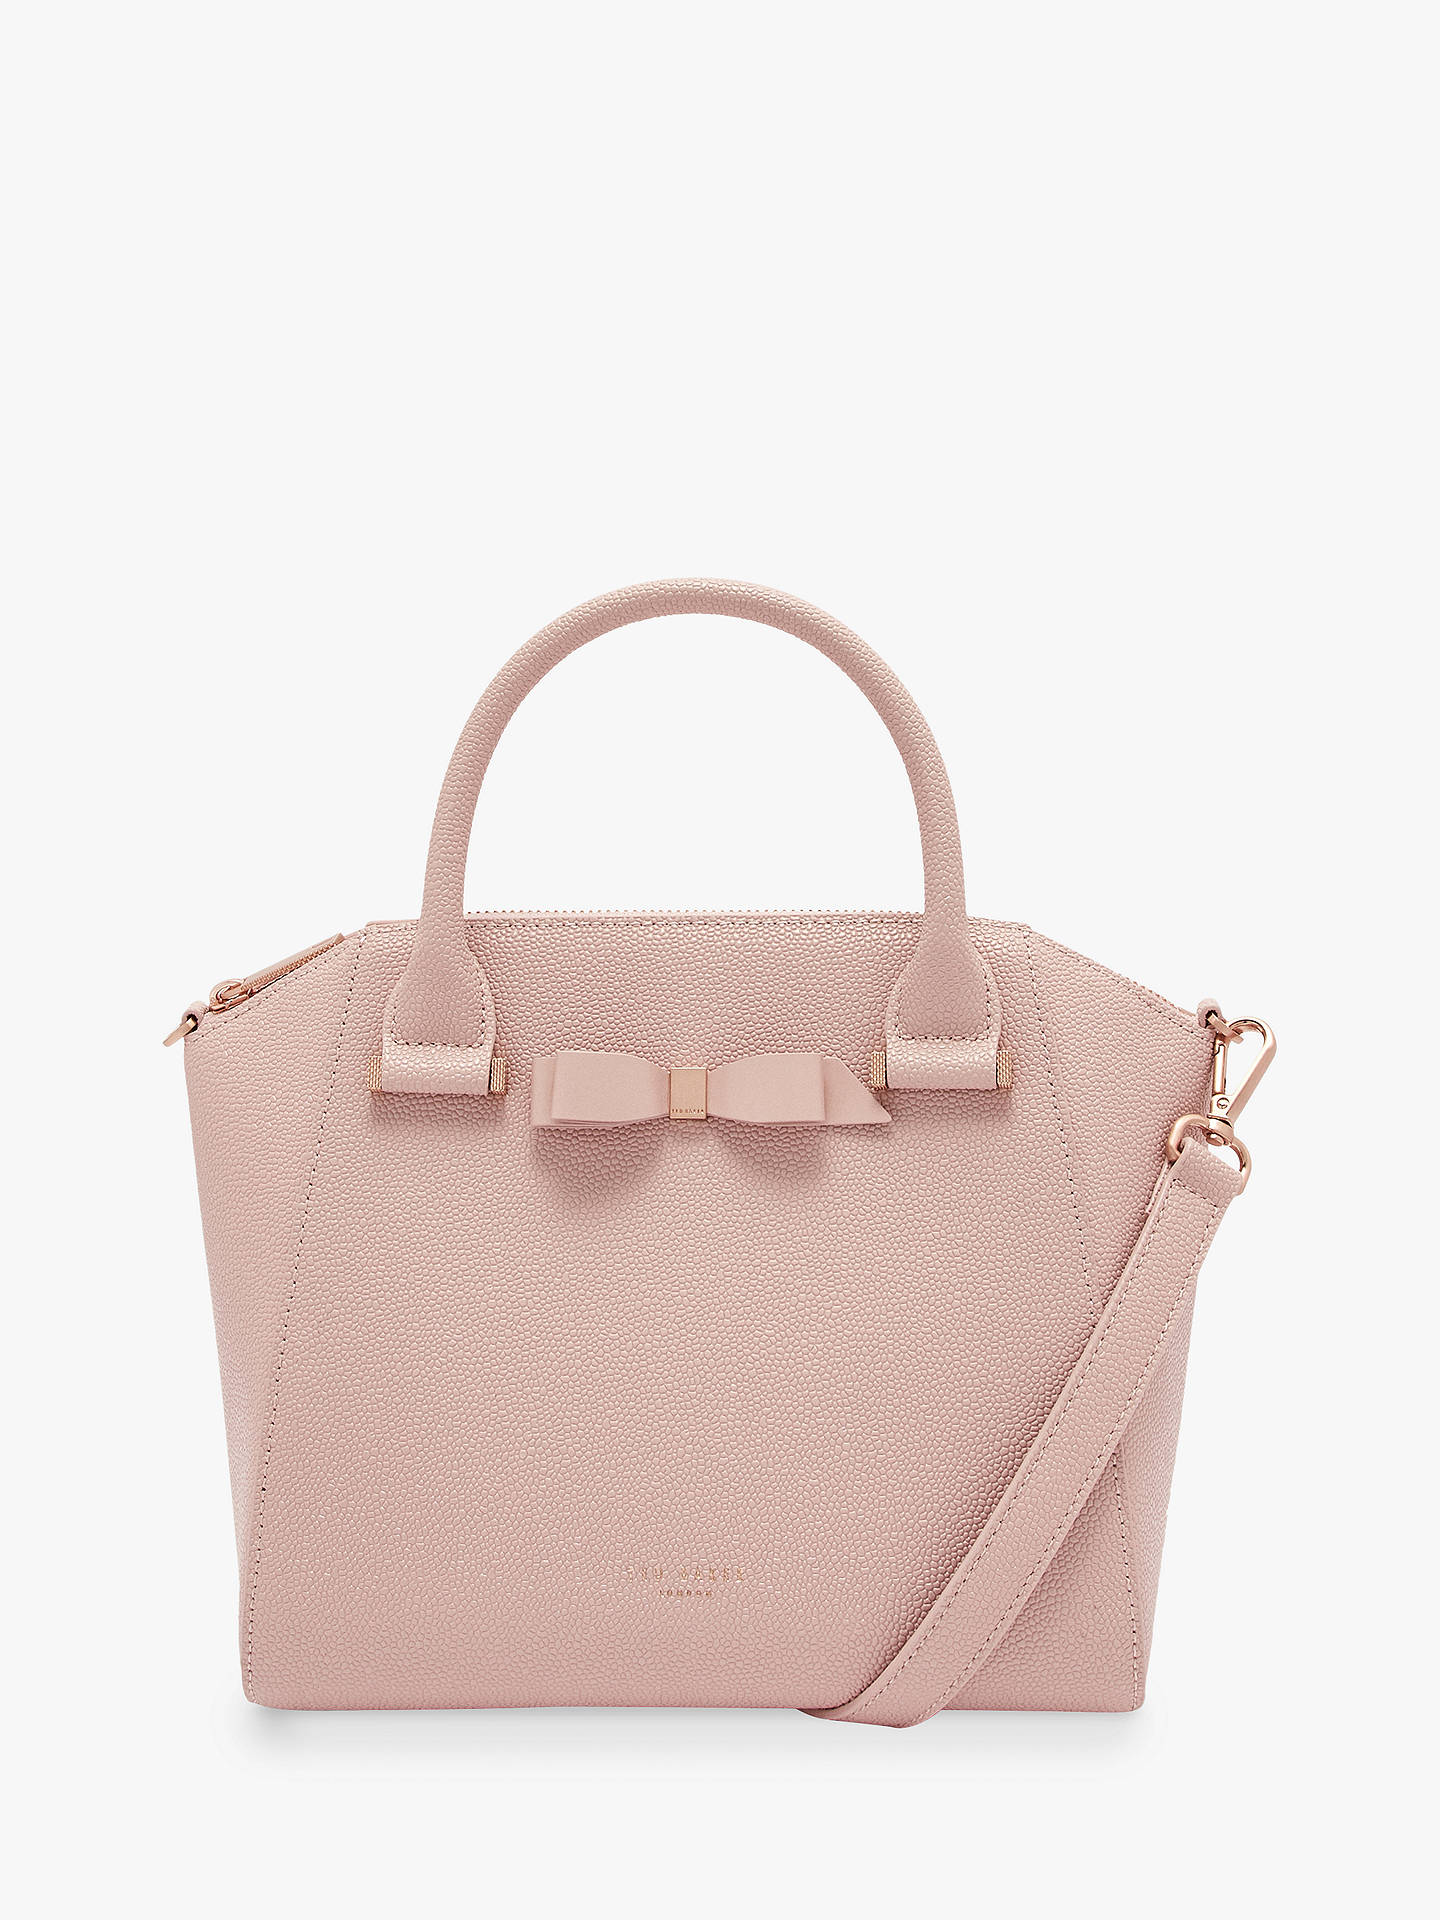 aa7009790 Buy Ted Baker Janne Bow Leather Tote Bag, Light Pink Online at  johnlewis.com ...